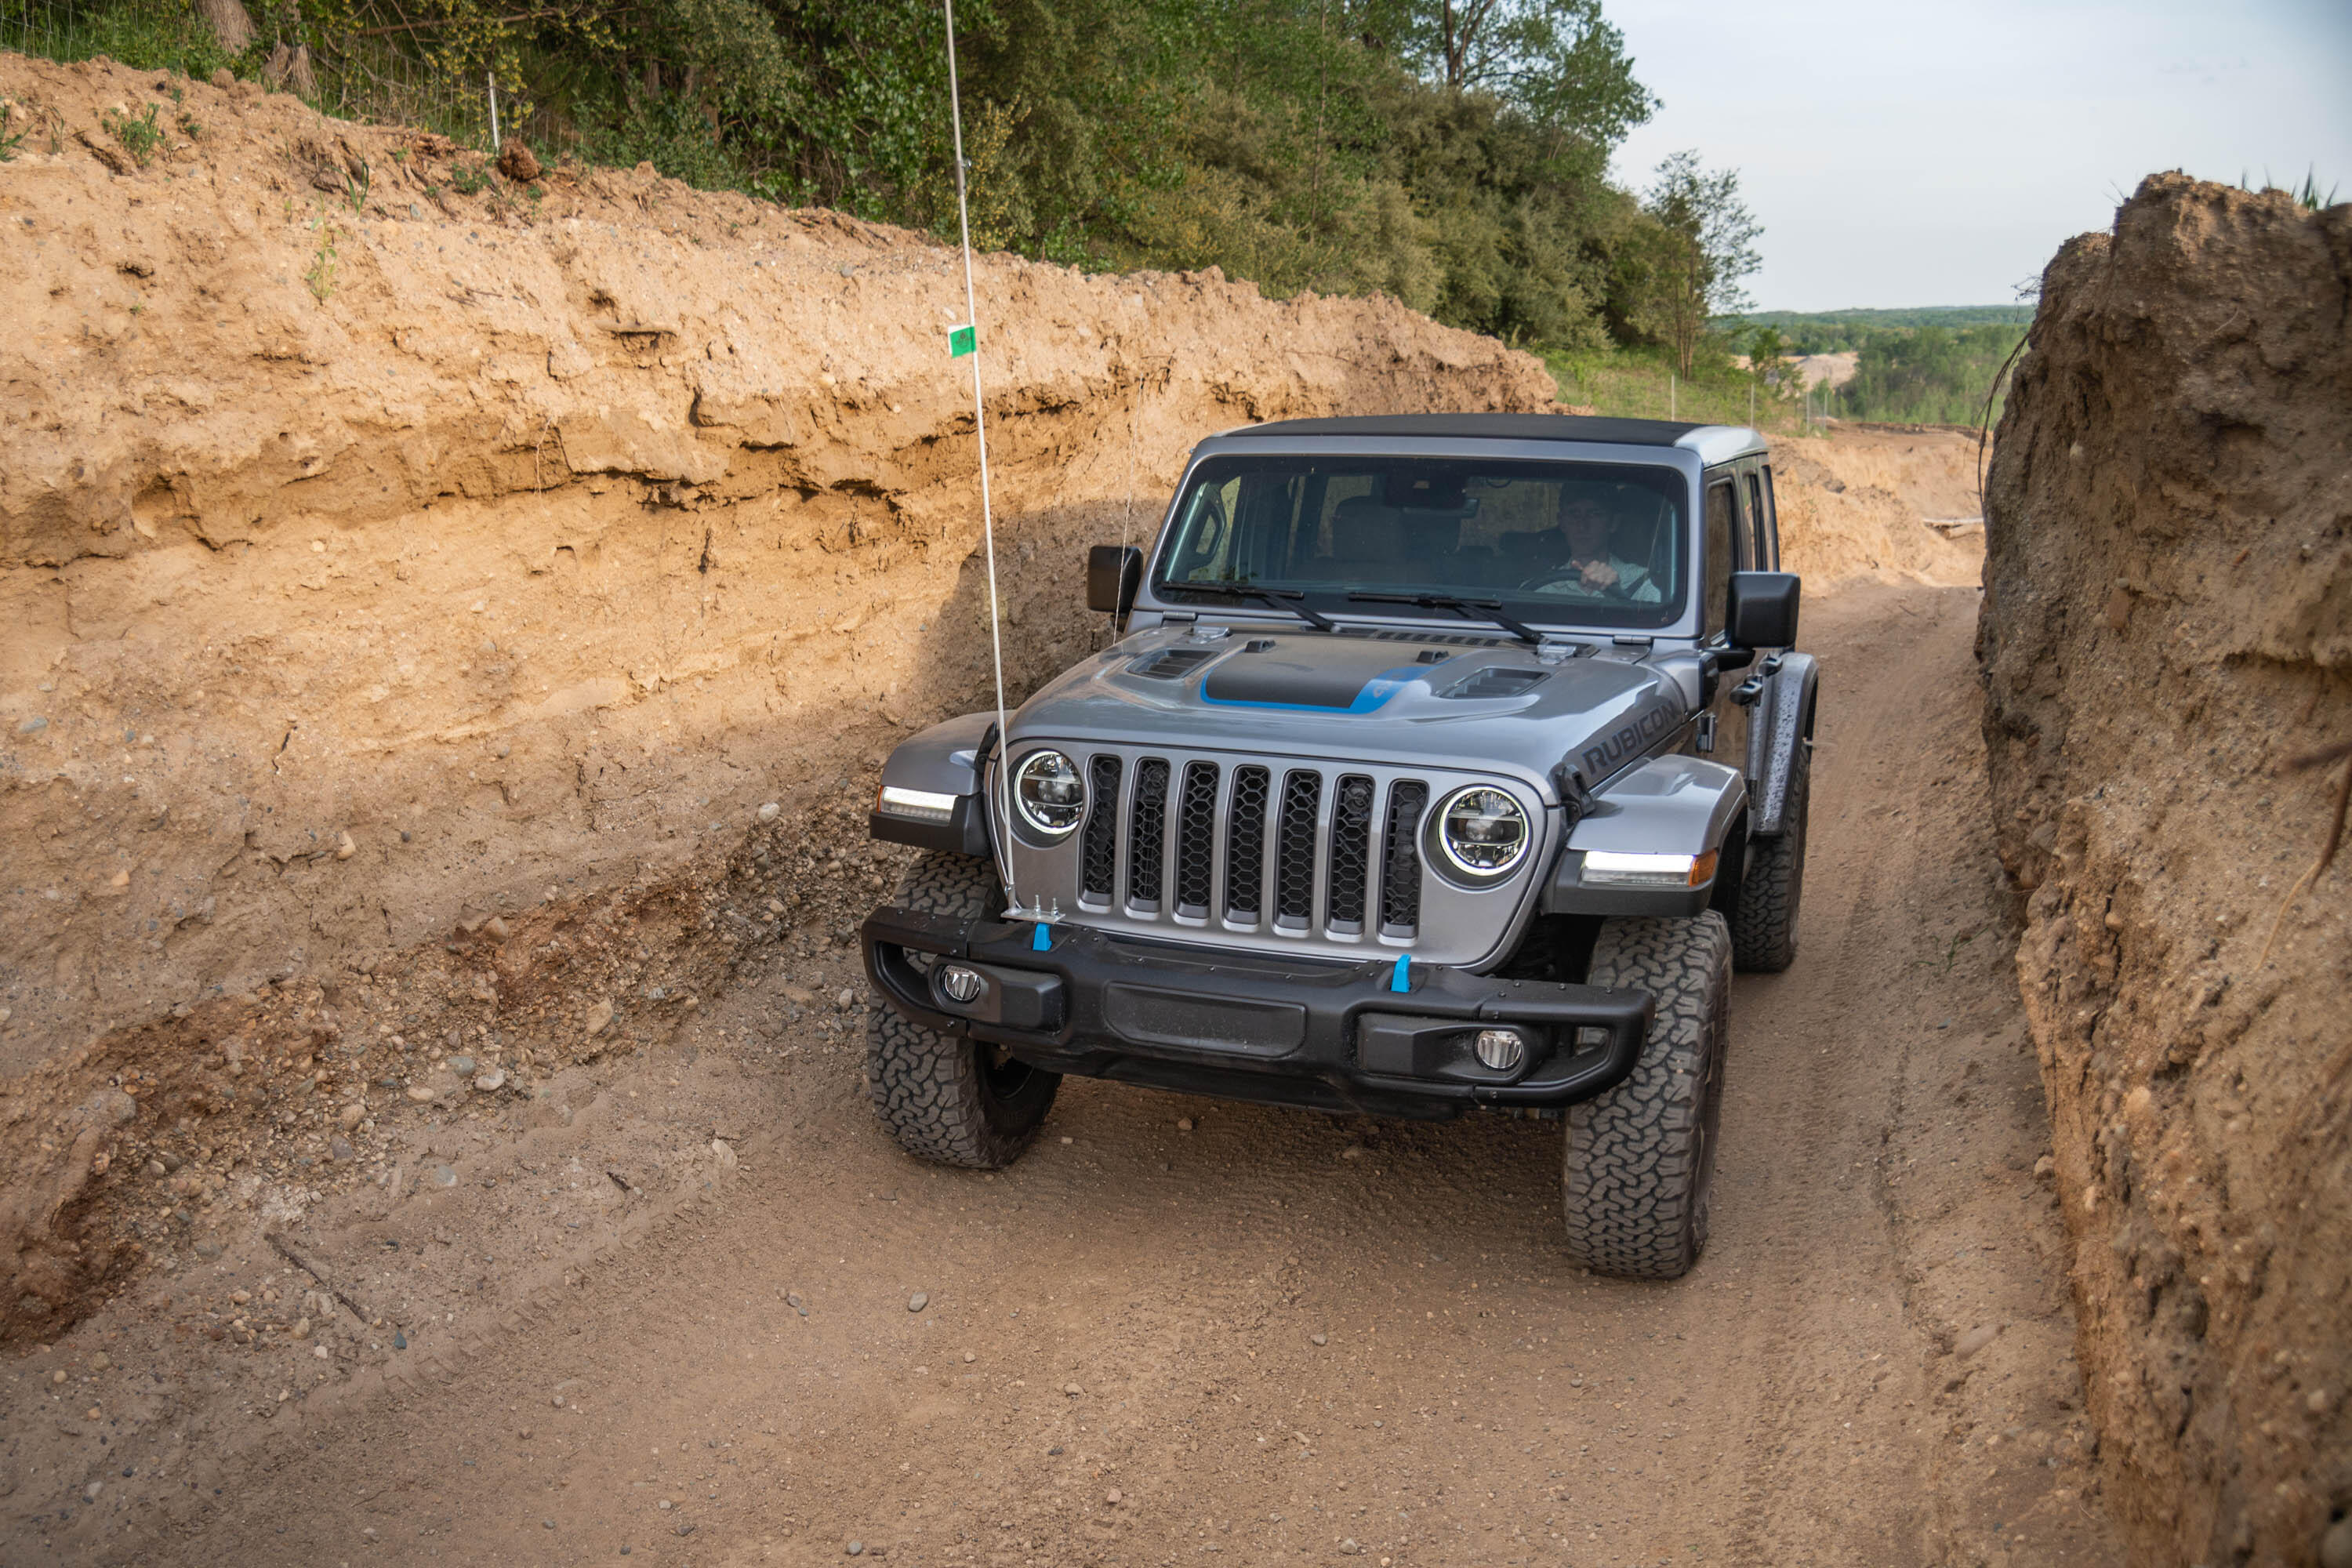 2021 Jeep Wrangler Unlimited Rubicon 4xe - off road